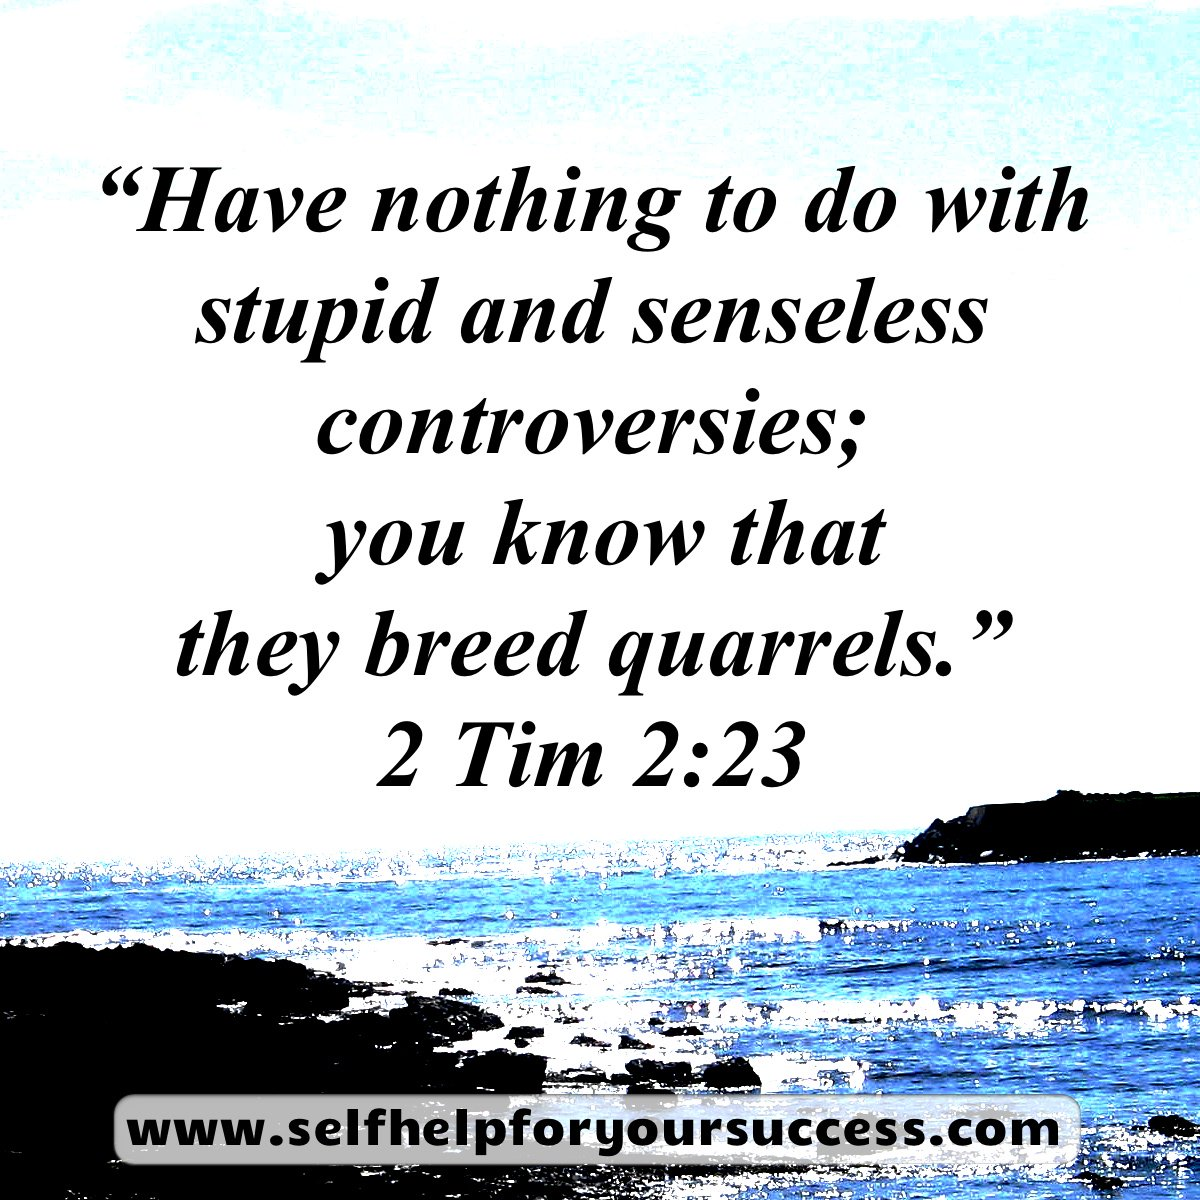 Don't be dragged in to senseless quarrels #leadership #personalgrowth <br>http://pic.twitter.com/d8hyCXpUYH